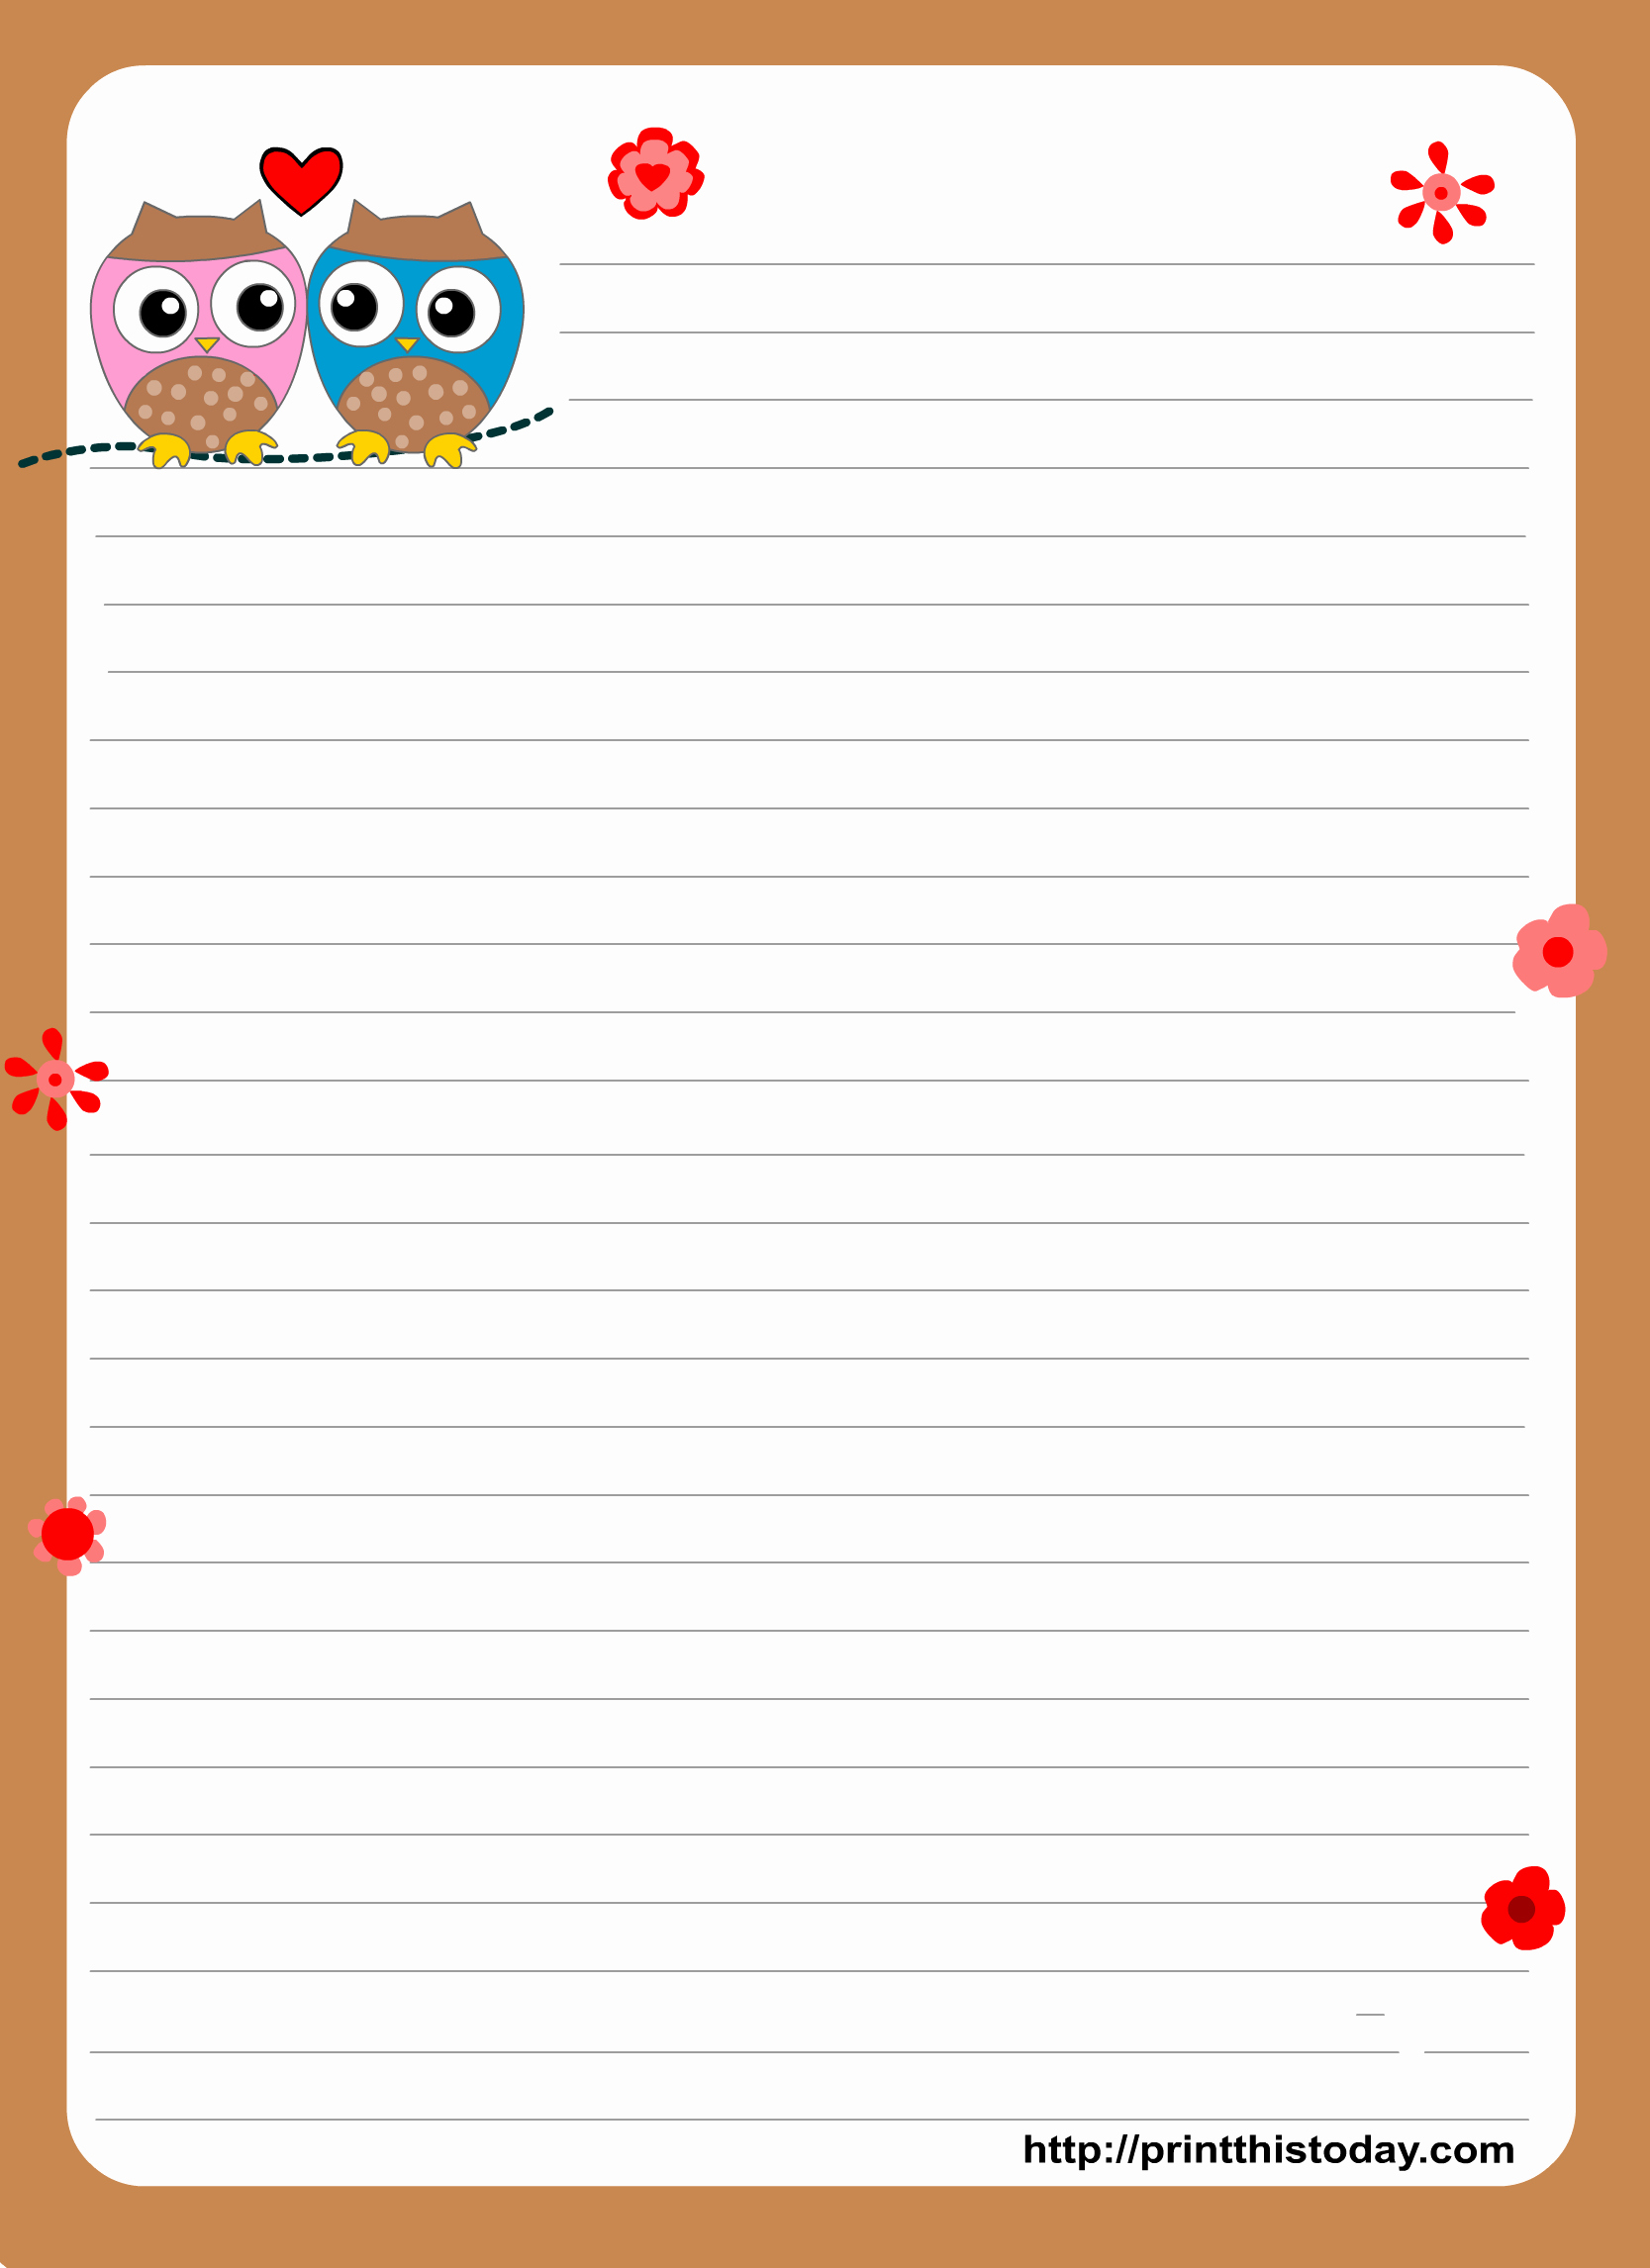 Free Printable Writing Paper Elegant 1000 Images About Free Printable Stationary On Pinterest